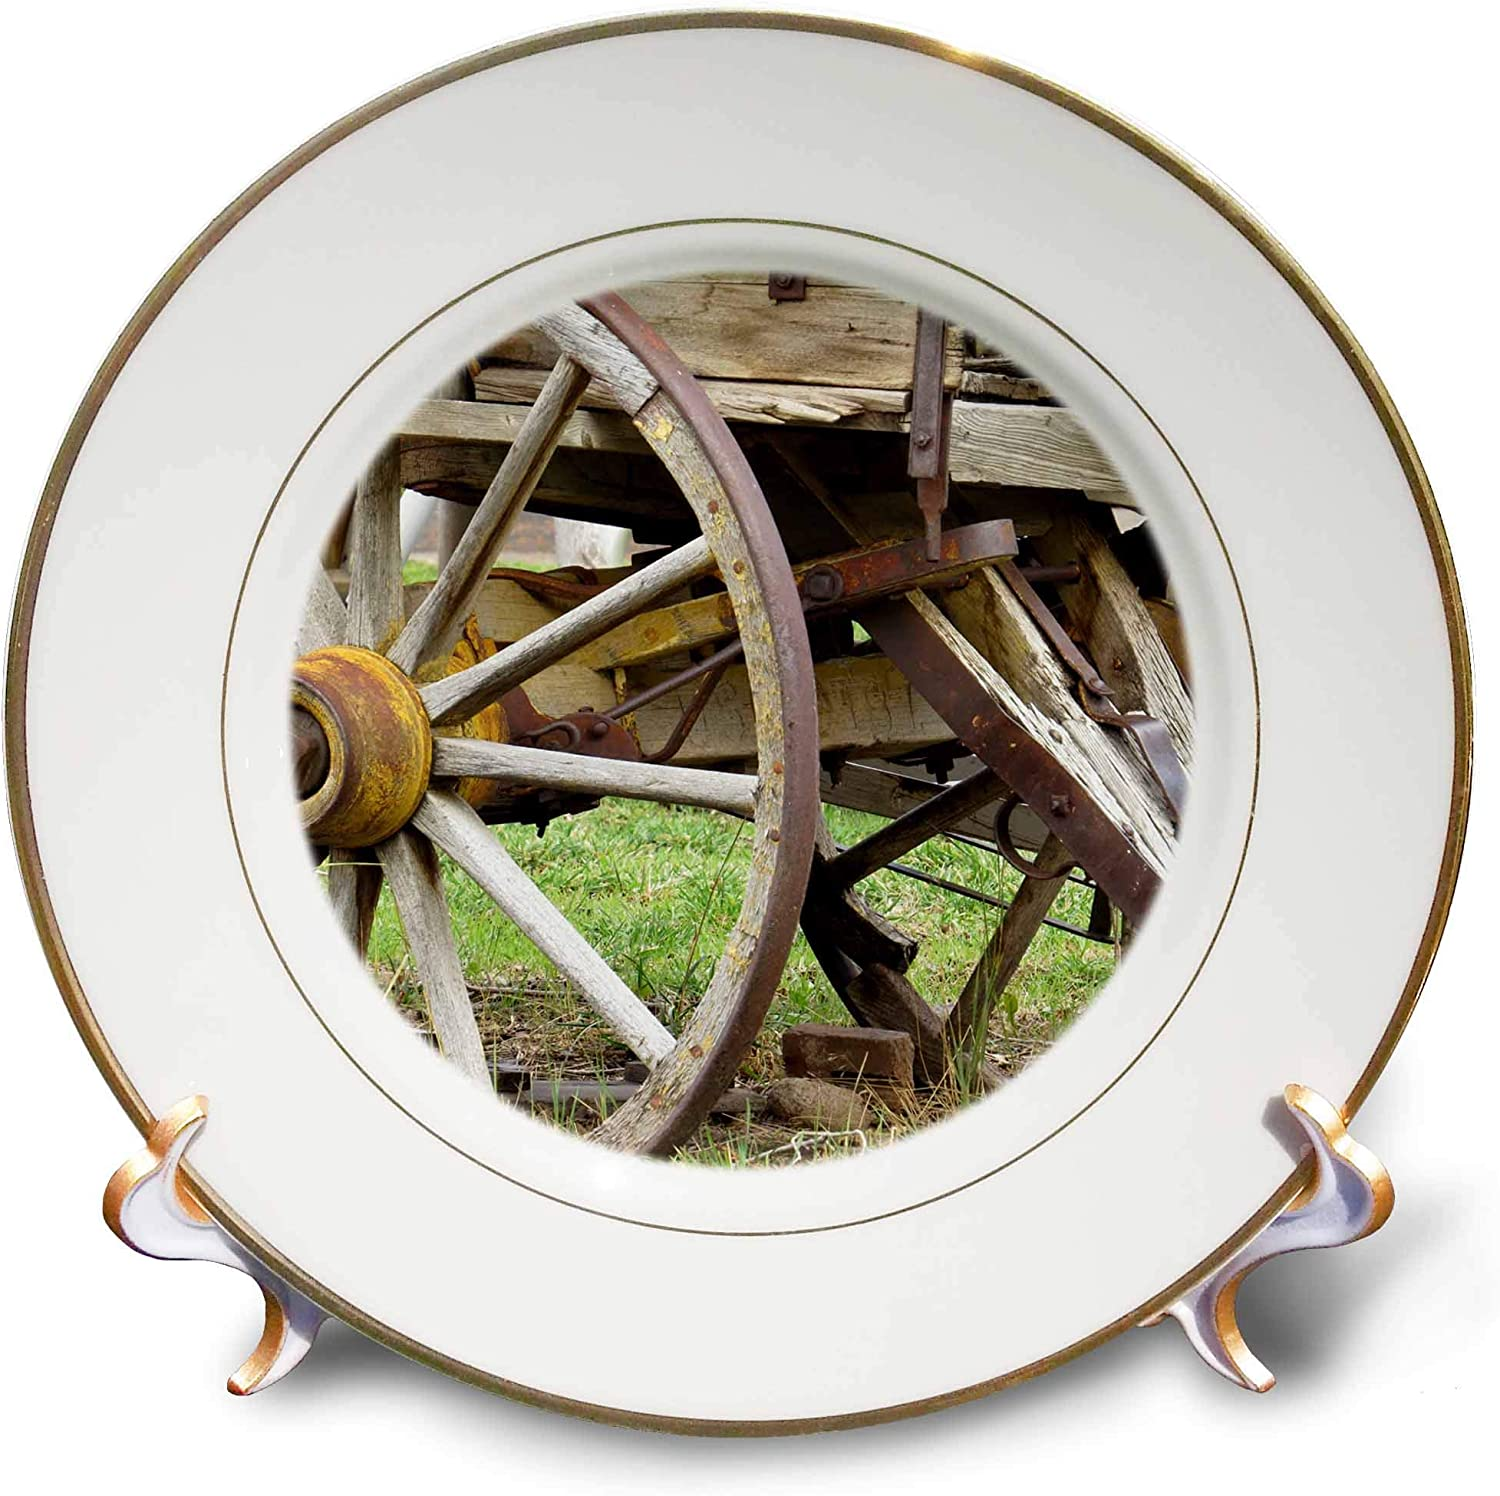 3dRose Jos Fauxtographee- Wagon Wheel - A Wheel on an Old Pioneer Wagon in Wood with Rust - 8 inch Porcelain Plate (cp_321172_1)